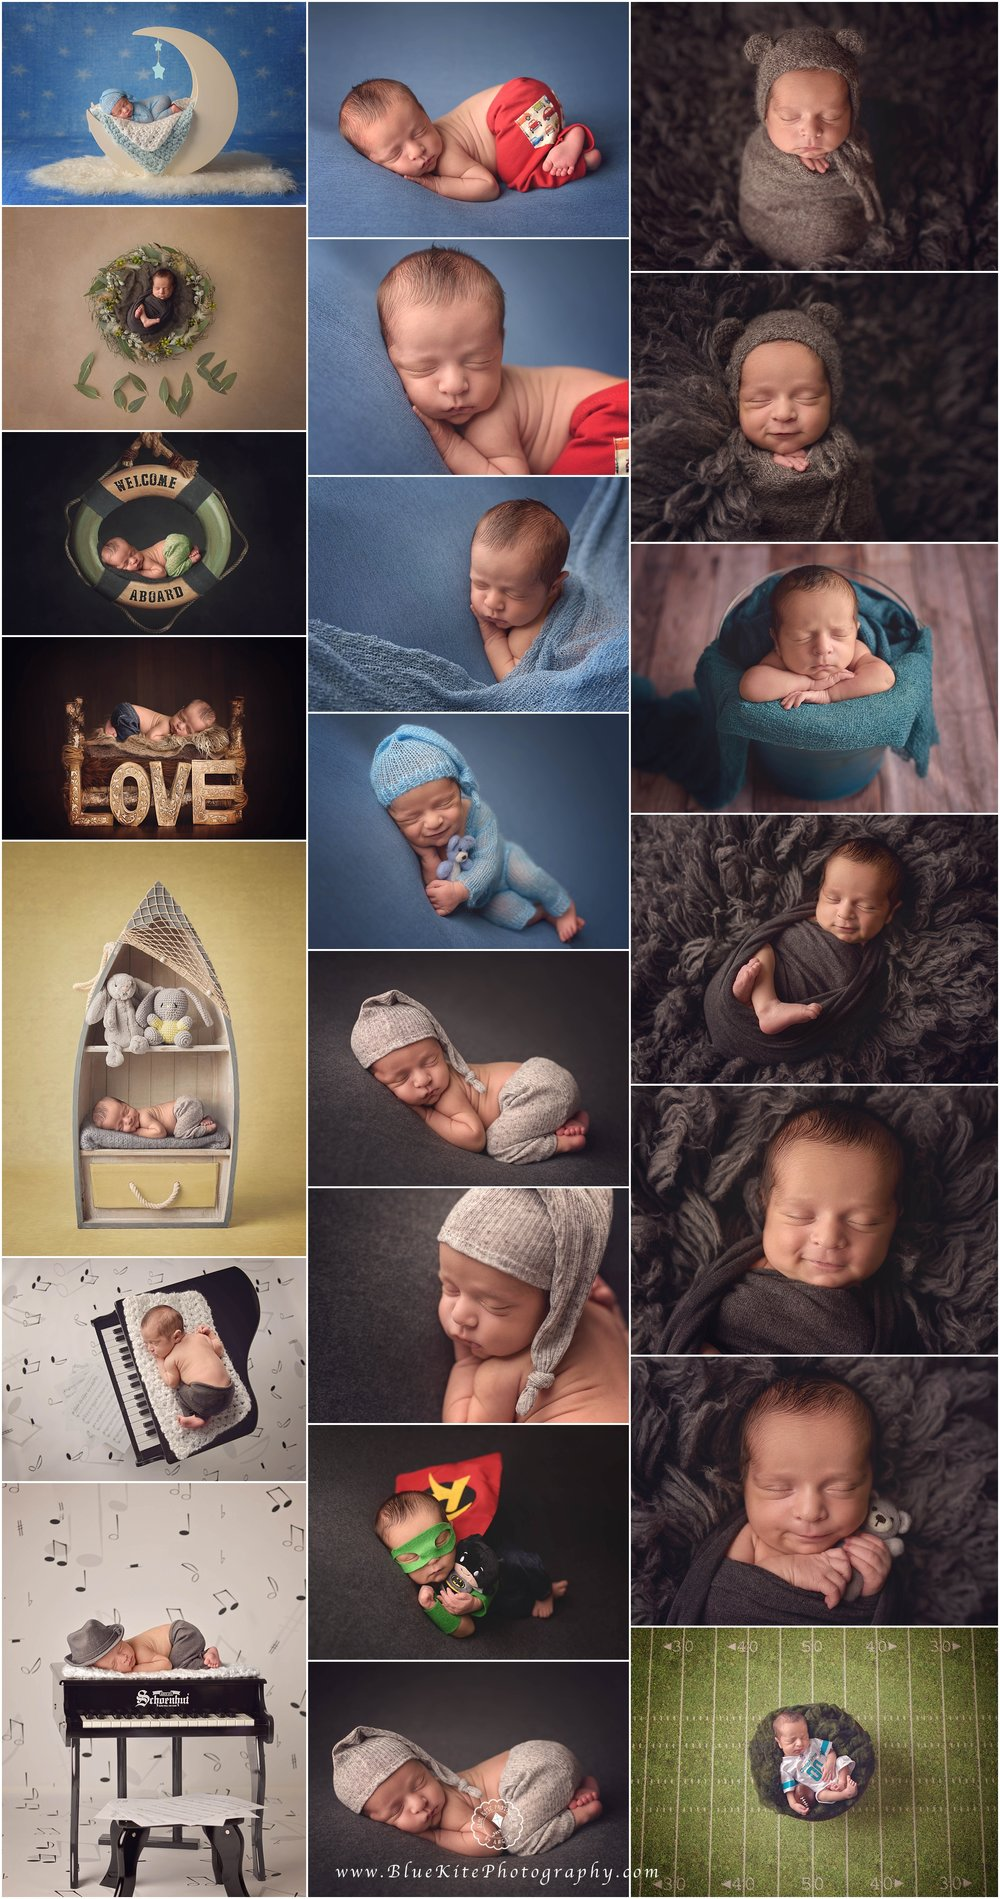 Newborn session, newborn photographer, newborn photography, Boca Raton, Coral Springs, Parkland, Delray Beach, Boynton Beach, Deerfield Beach, Weston, Coconut Creek, Wellington, Palm Beach